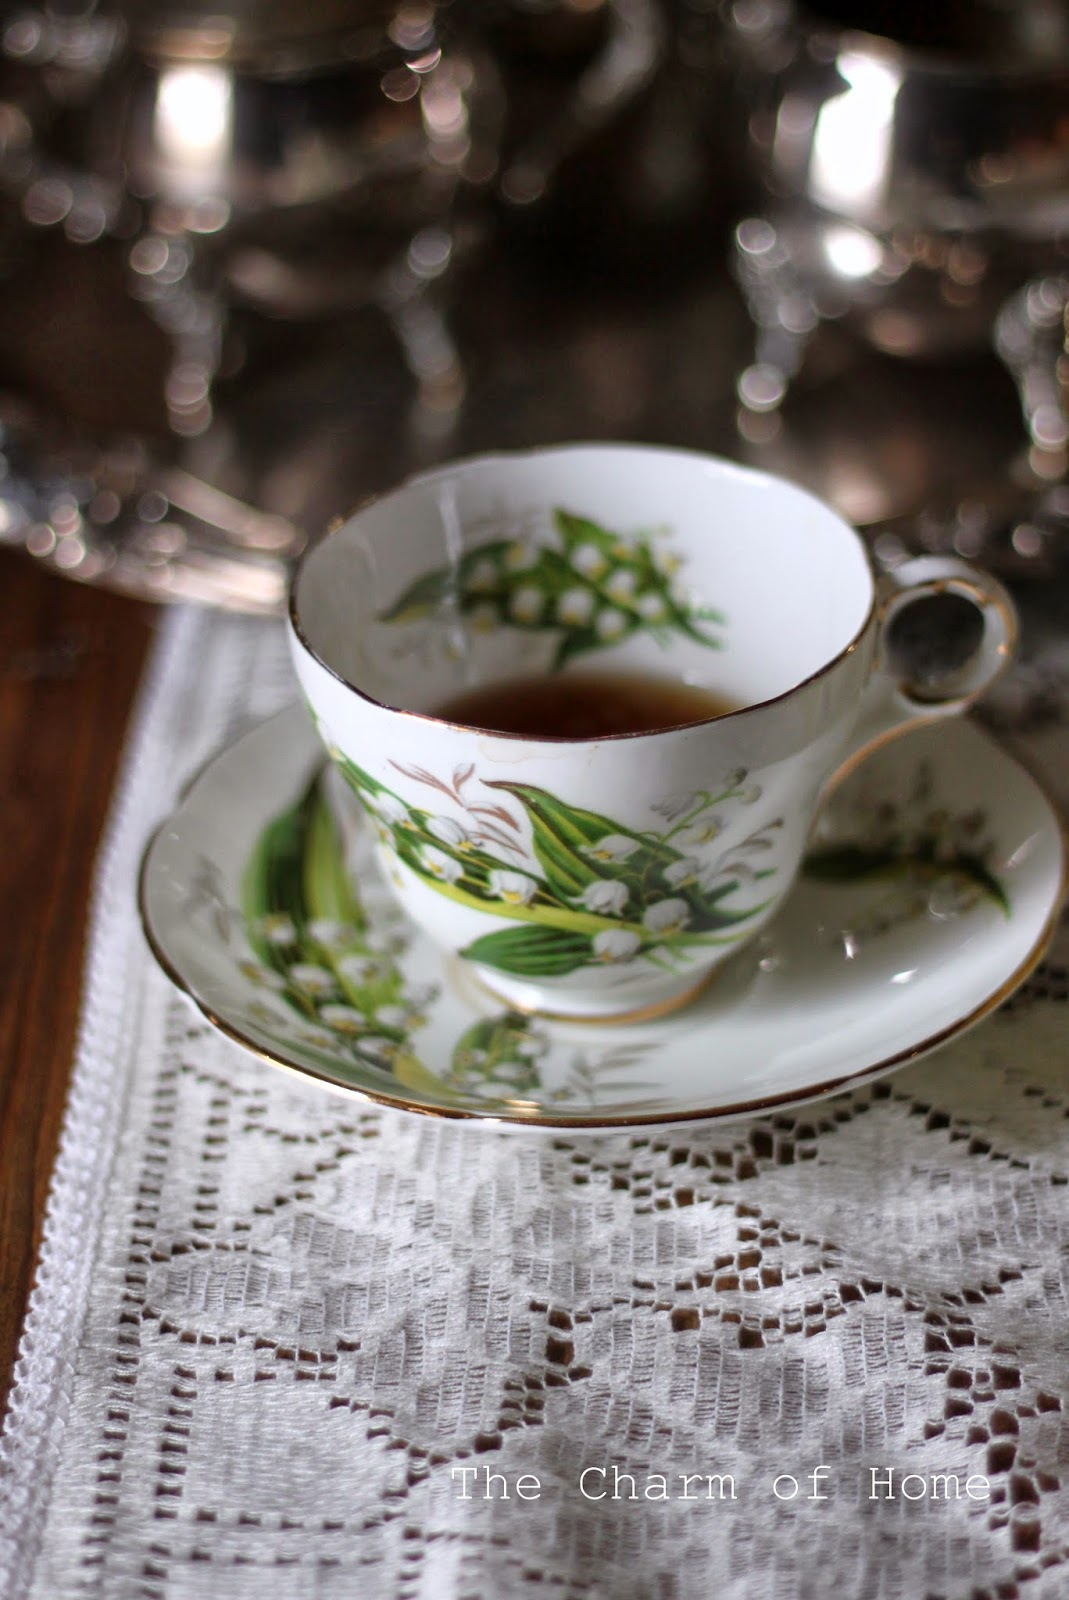 Lily of the Valley teacup, The Charm of Home